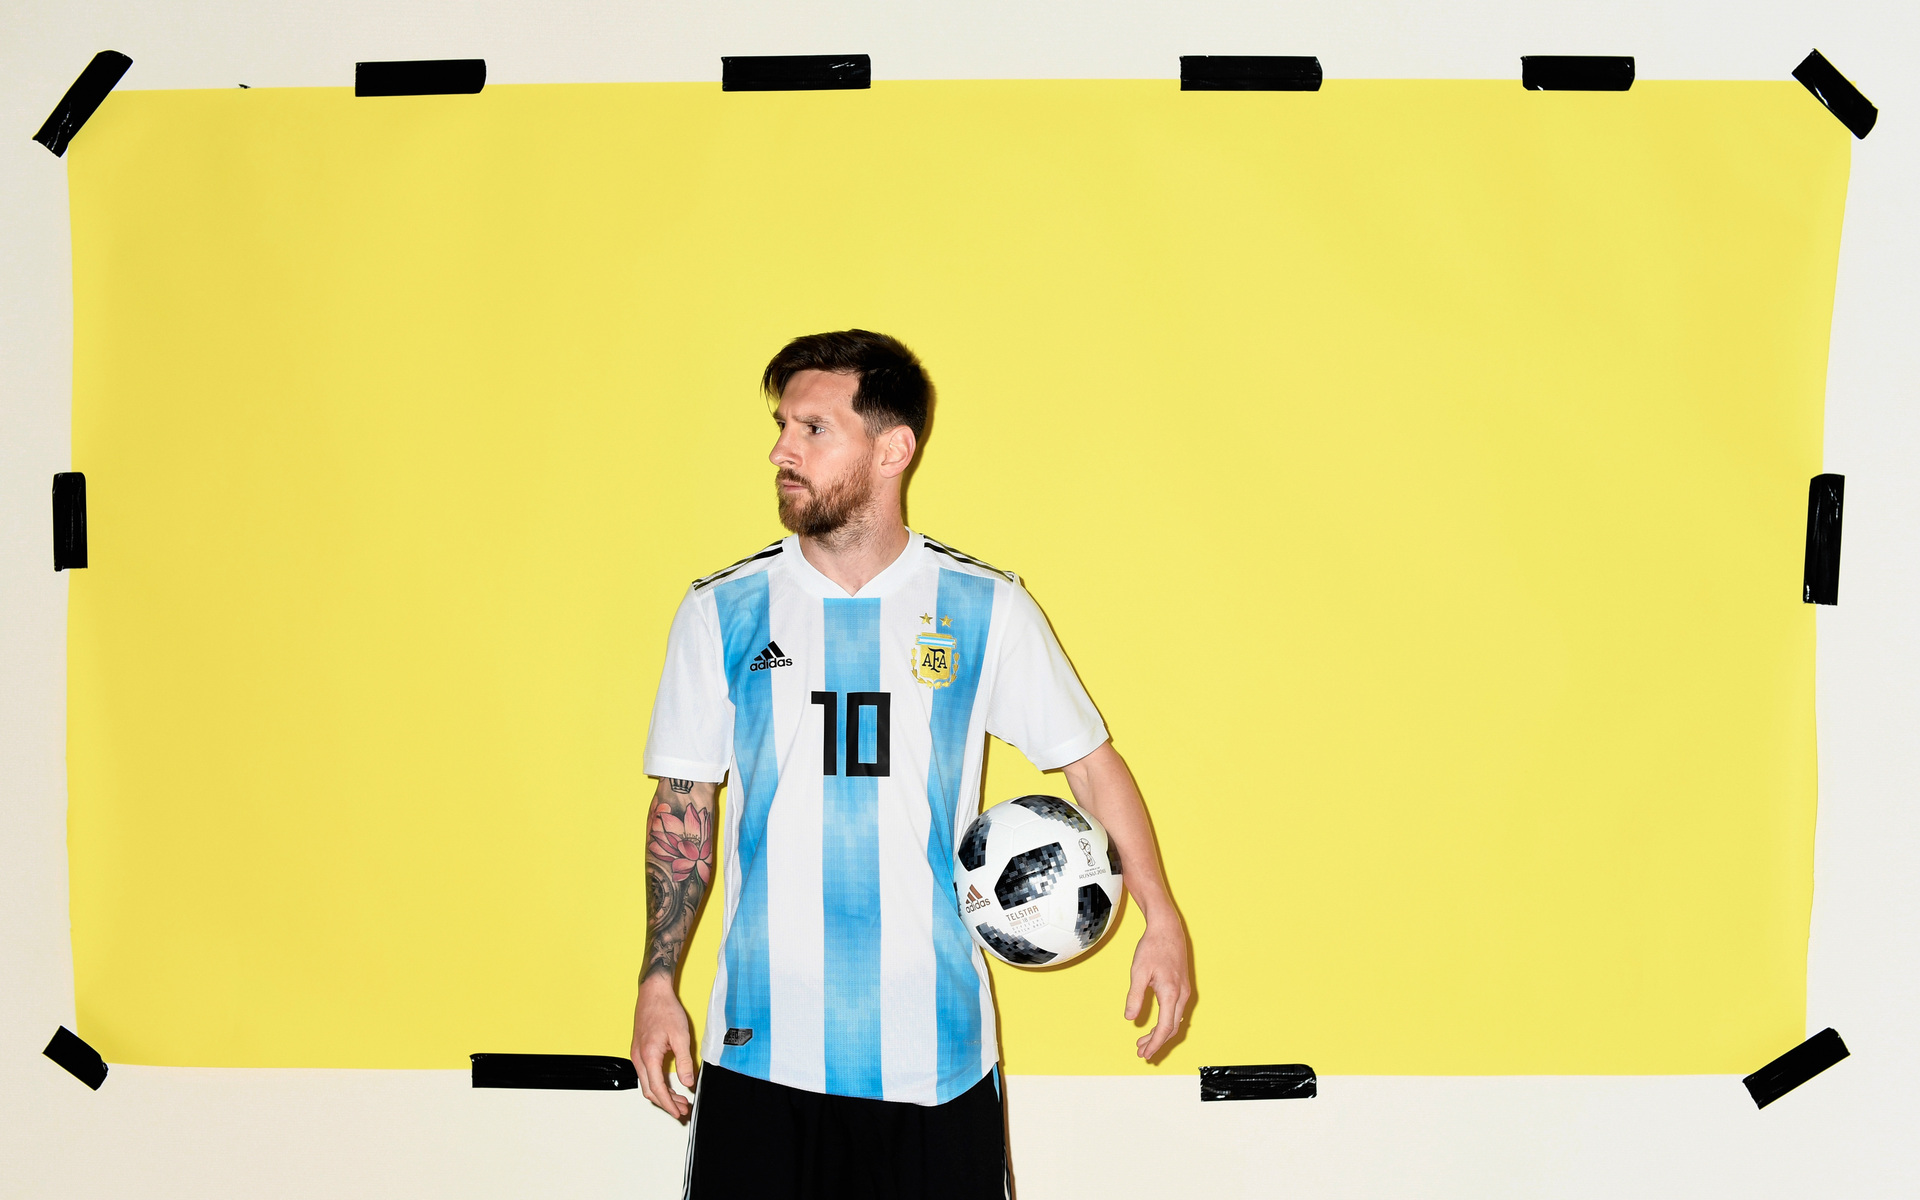 1920x1200 Lionel Messi Argentina Portrait 2018 1080p Resolution Hd 4k Wallpapers Images Backgrounds Photos And Pictures